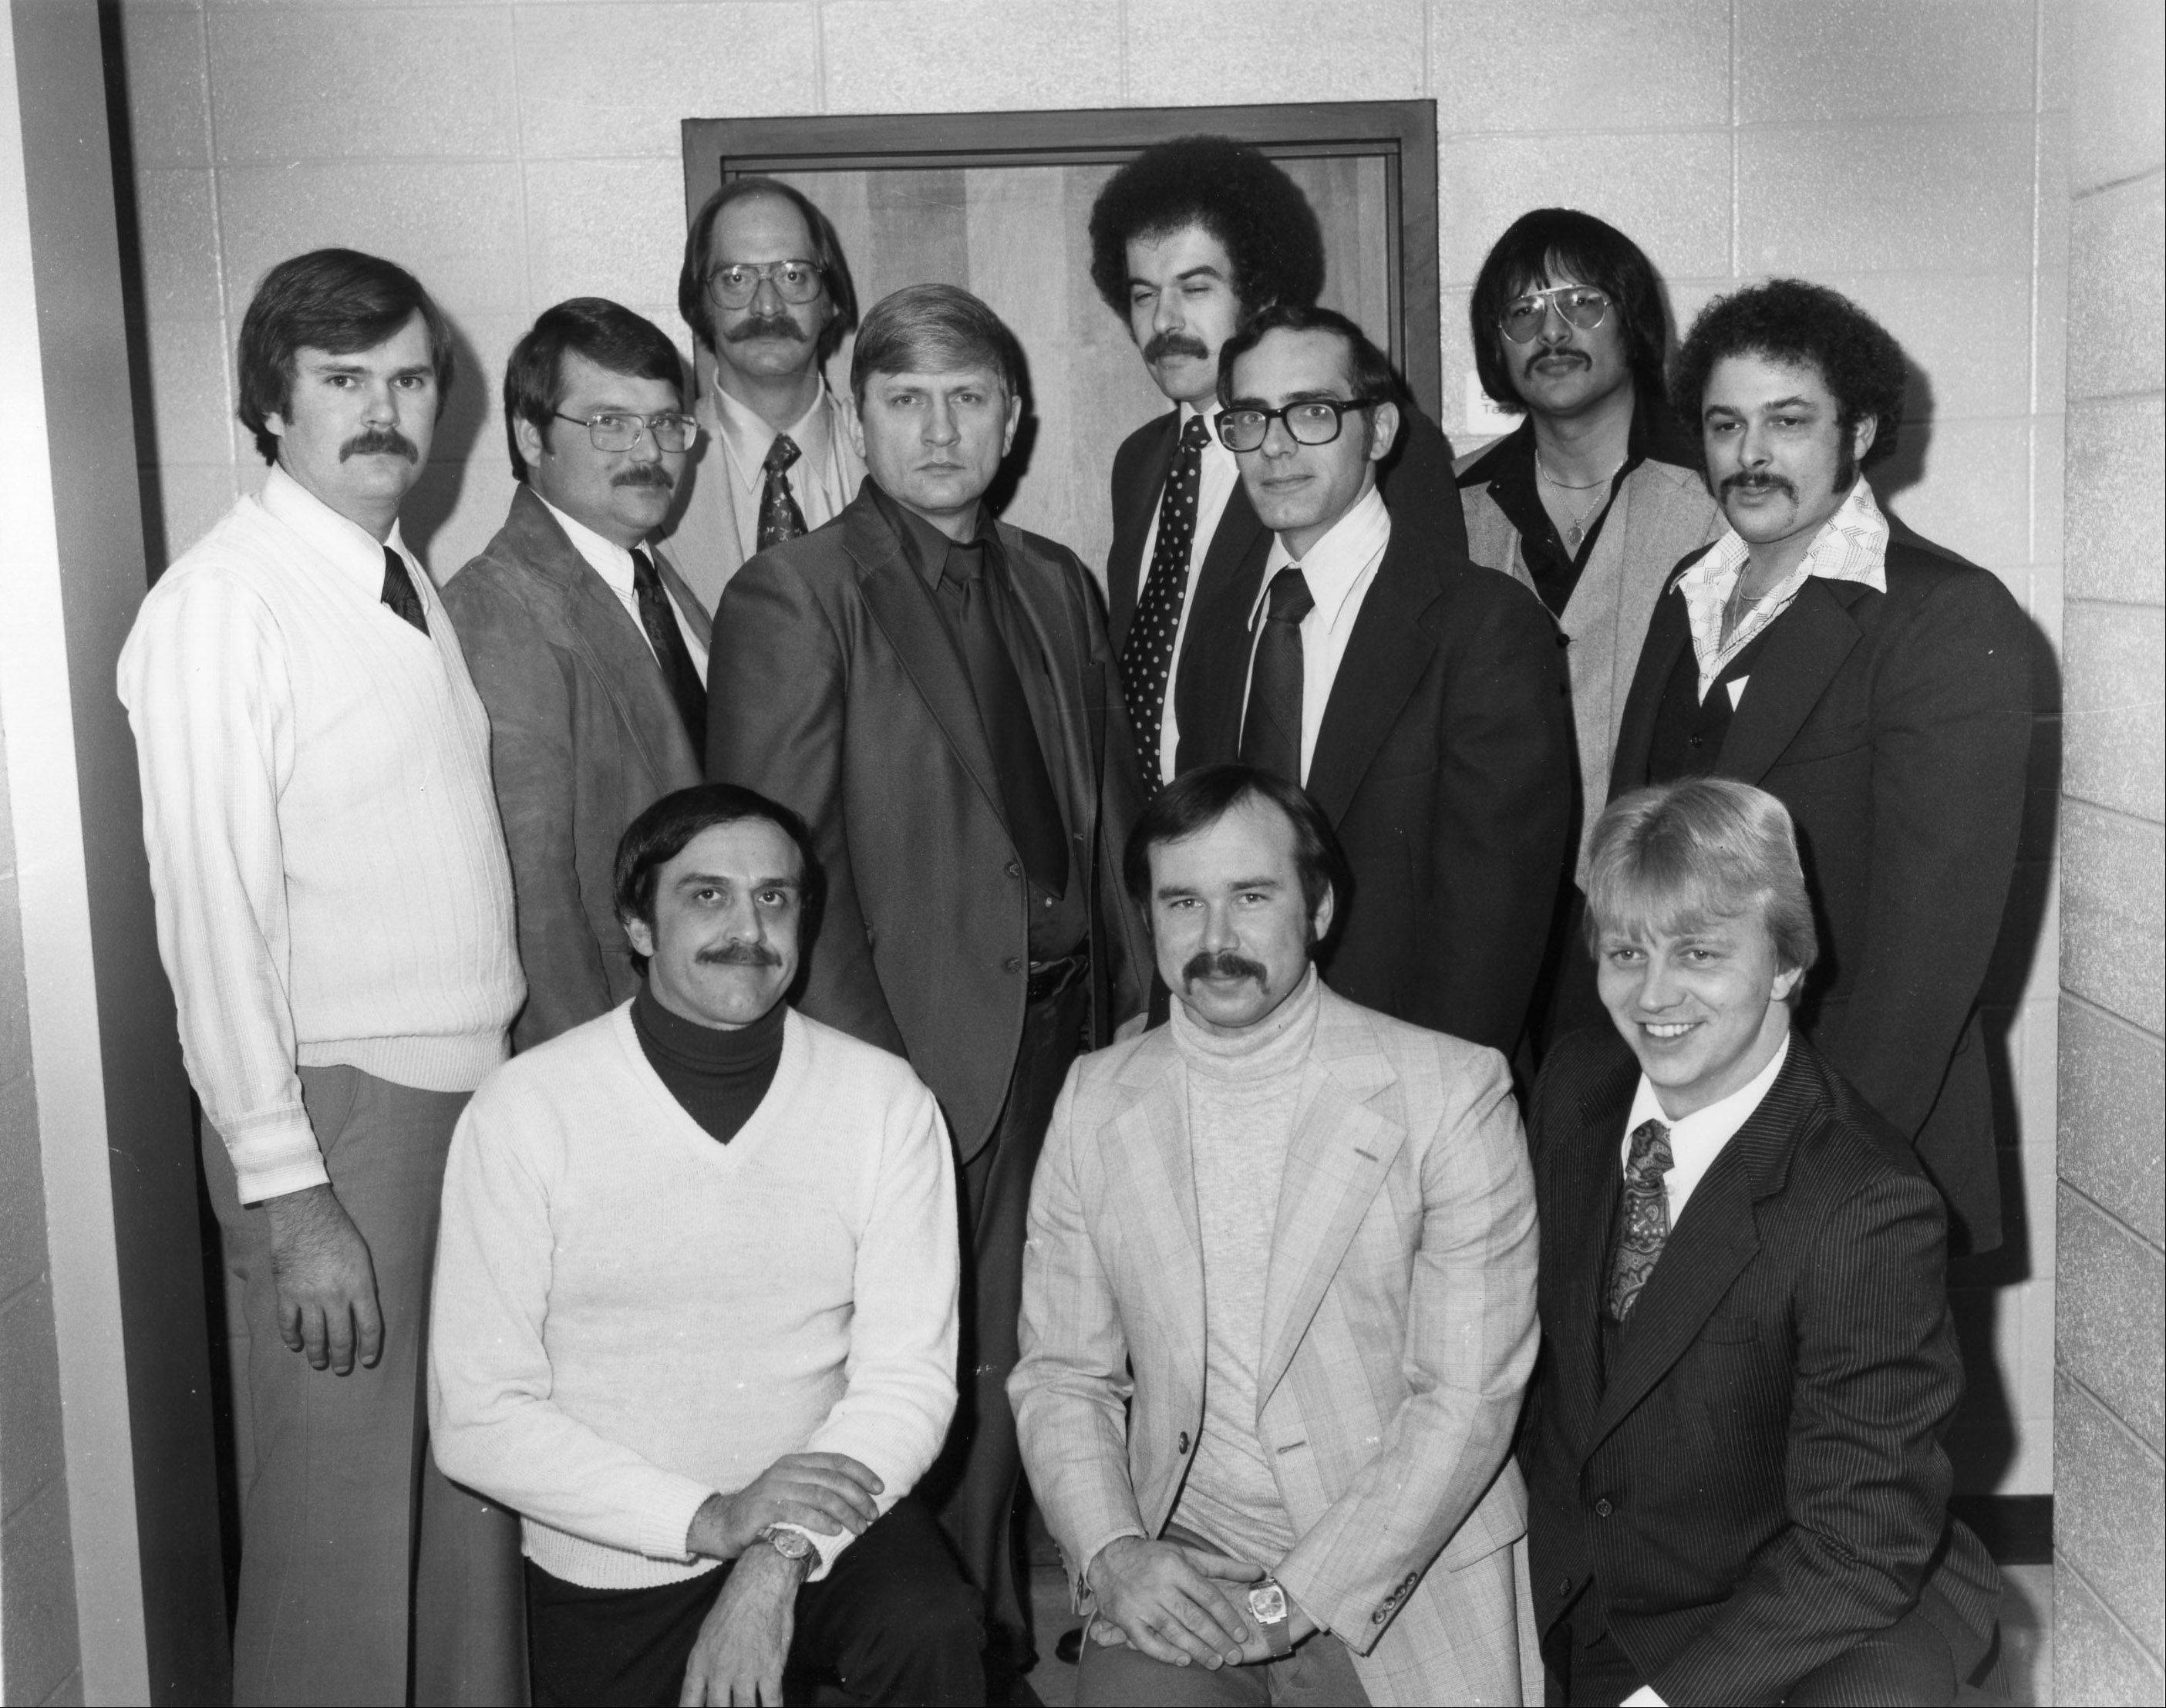 The team of Des Plaines Police investigators who broke the case of notorious serial killer John Wayne Gacy, Jr., all of whom are no longer with the department and some are deceased. In the front row from left are, the late detective James Pickle, detective James Ryan, officer Michael Albrecht; back row from left, officer David Hachmeister, the late detective James Kautz, officer Ronald Robinson, Sgt. Joseph Kozenczak, Sgt. Walter Lang, the late detective Ronald Adams, detective Rafael Tovar, and officer Robert Schultz.